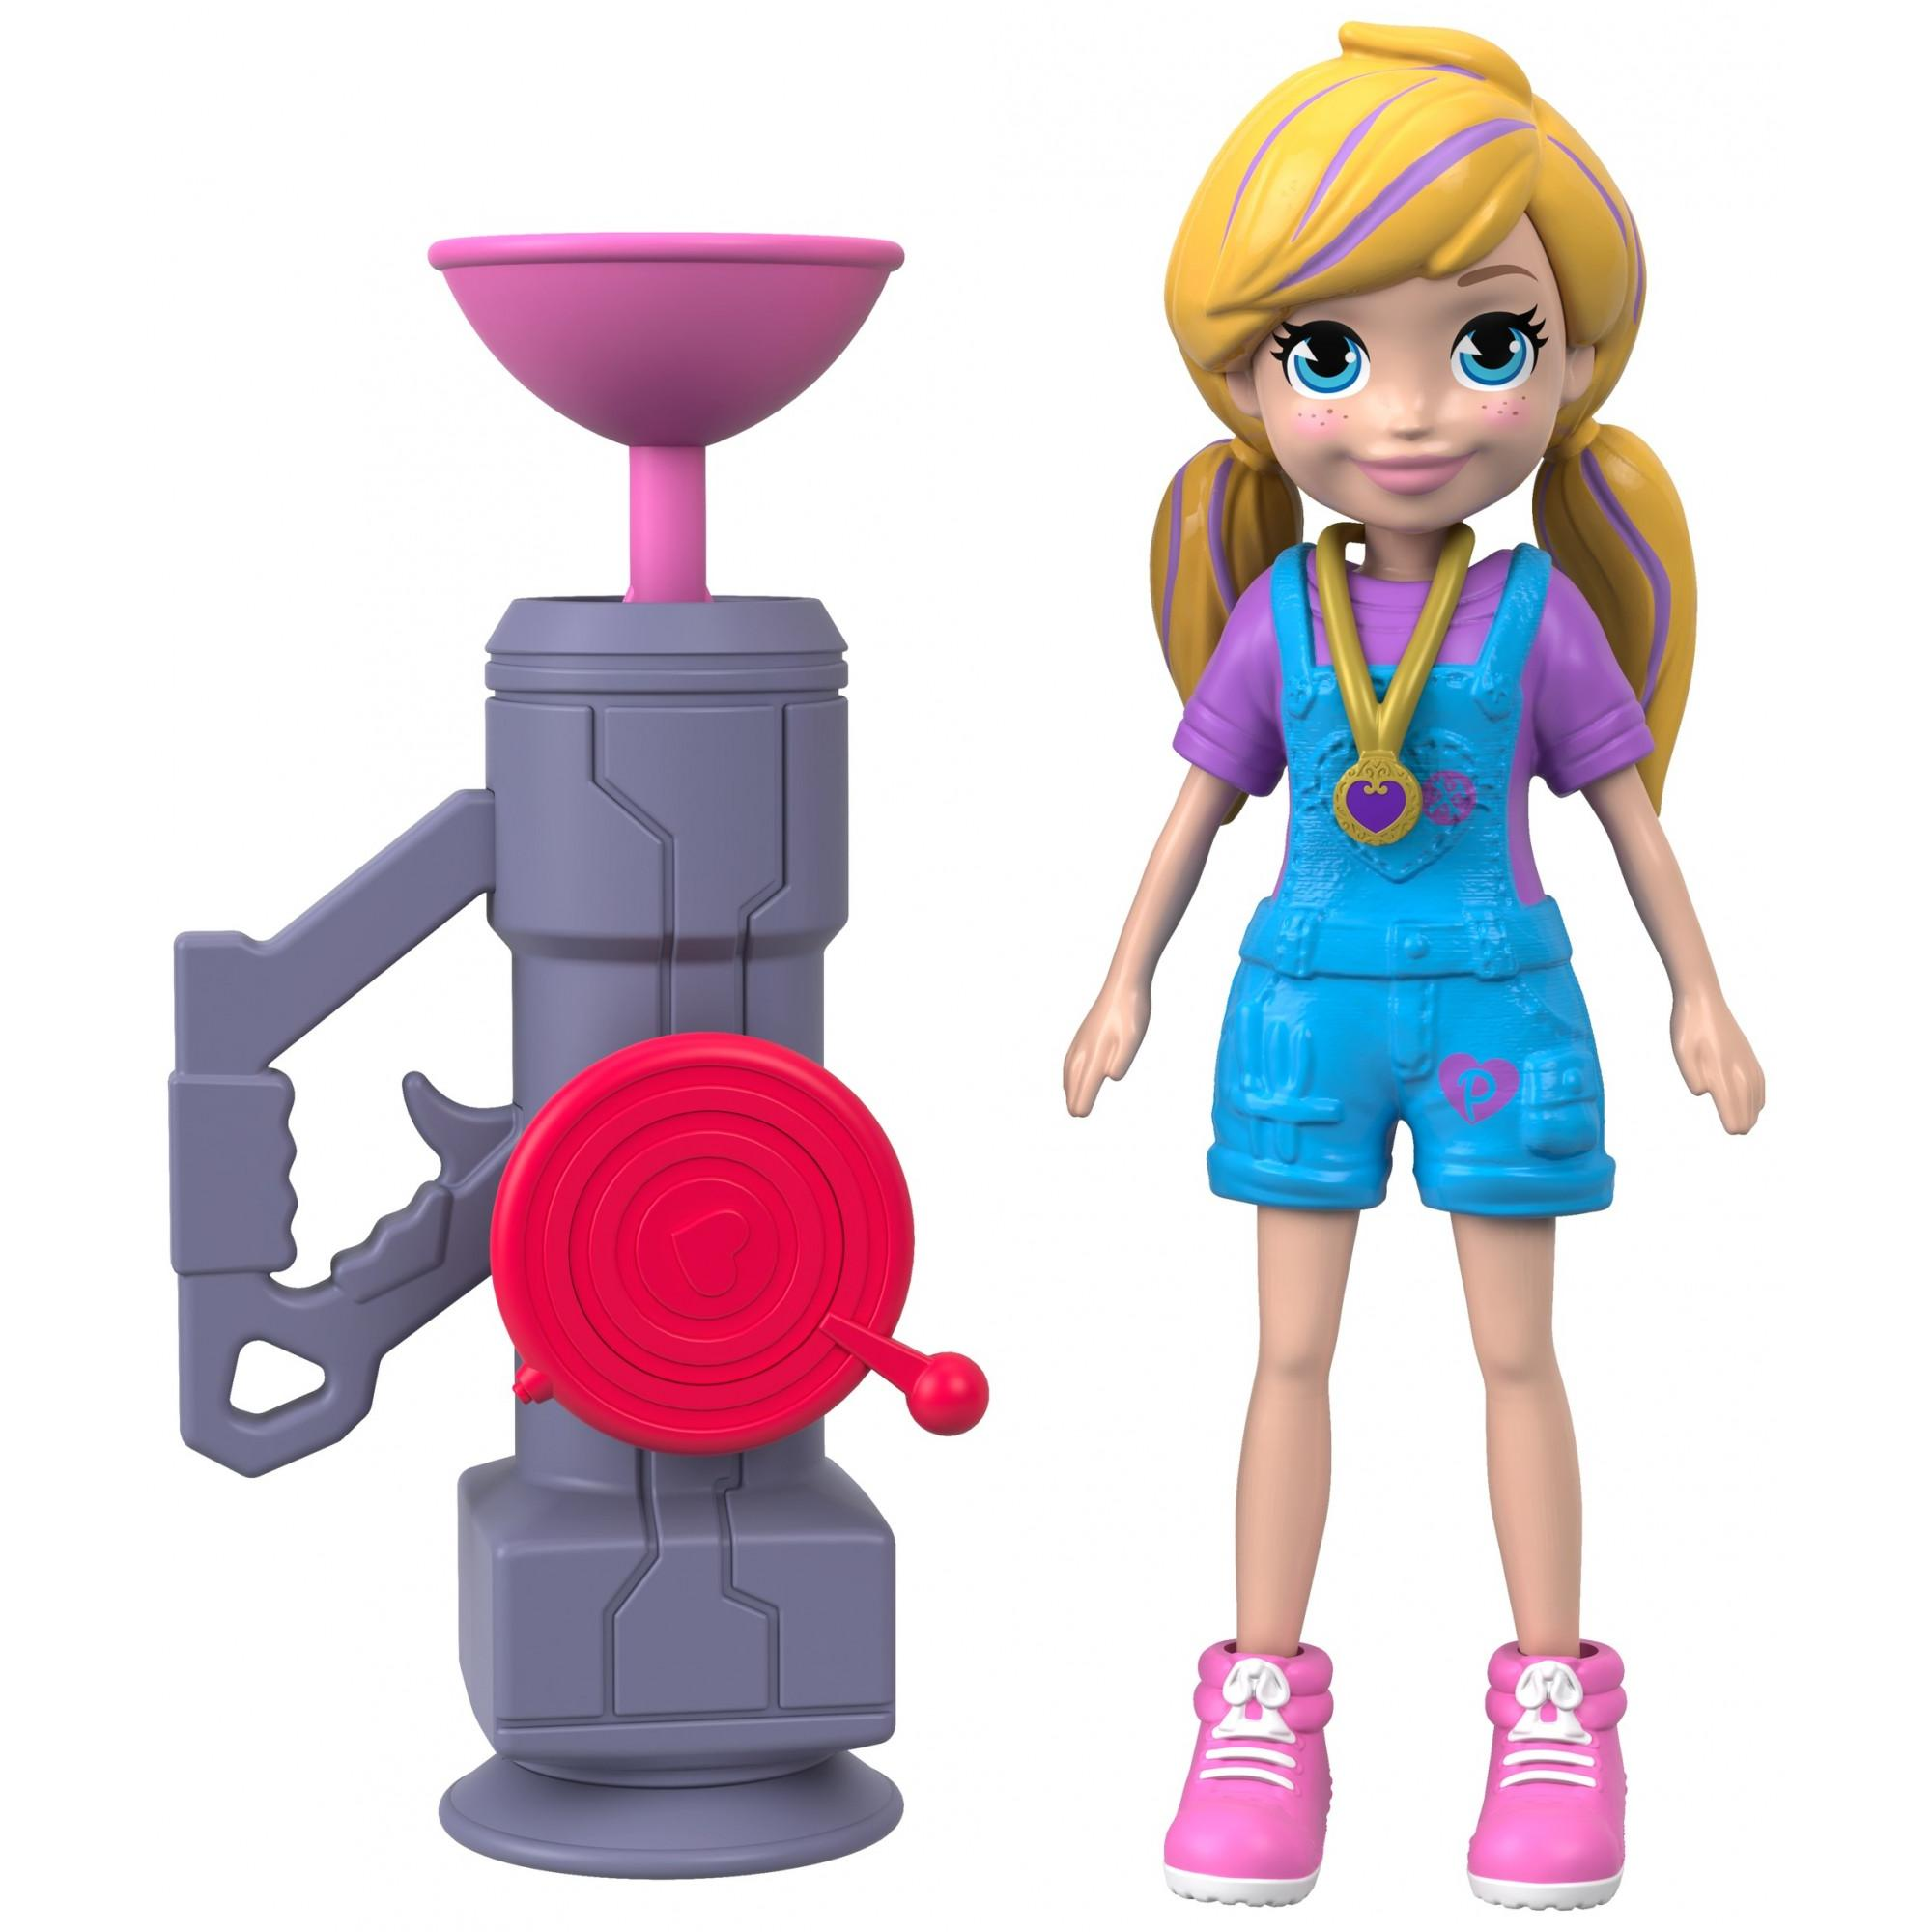 Polly Pocket Active Pose Zip 'n' Blast Zipline Blaster Adventure Polly Doll, Blonde